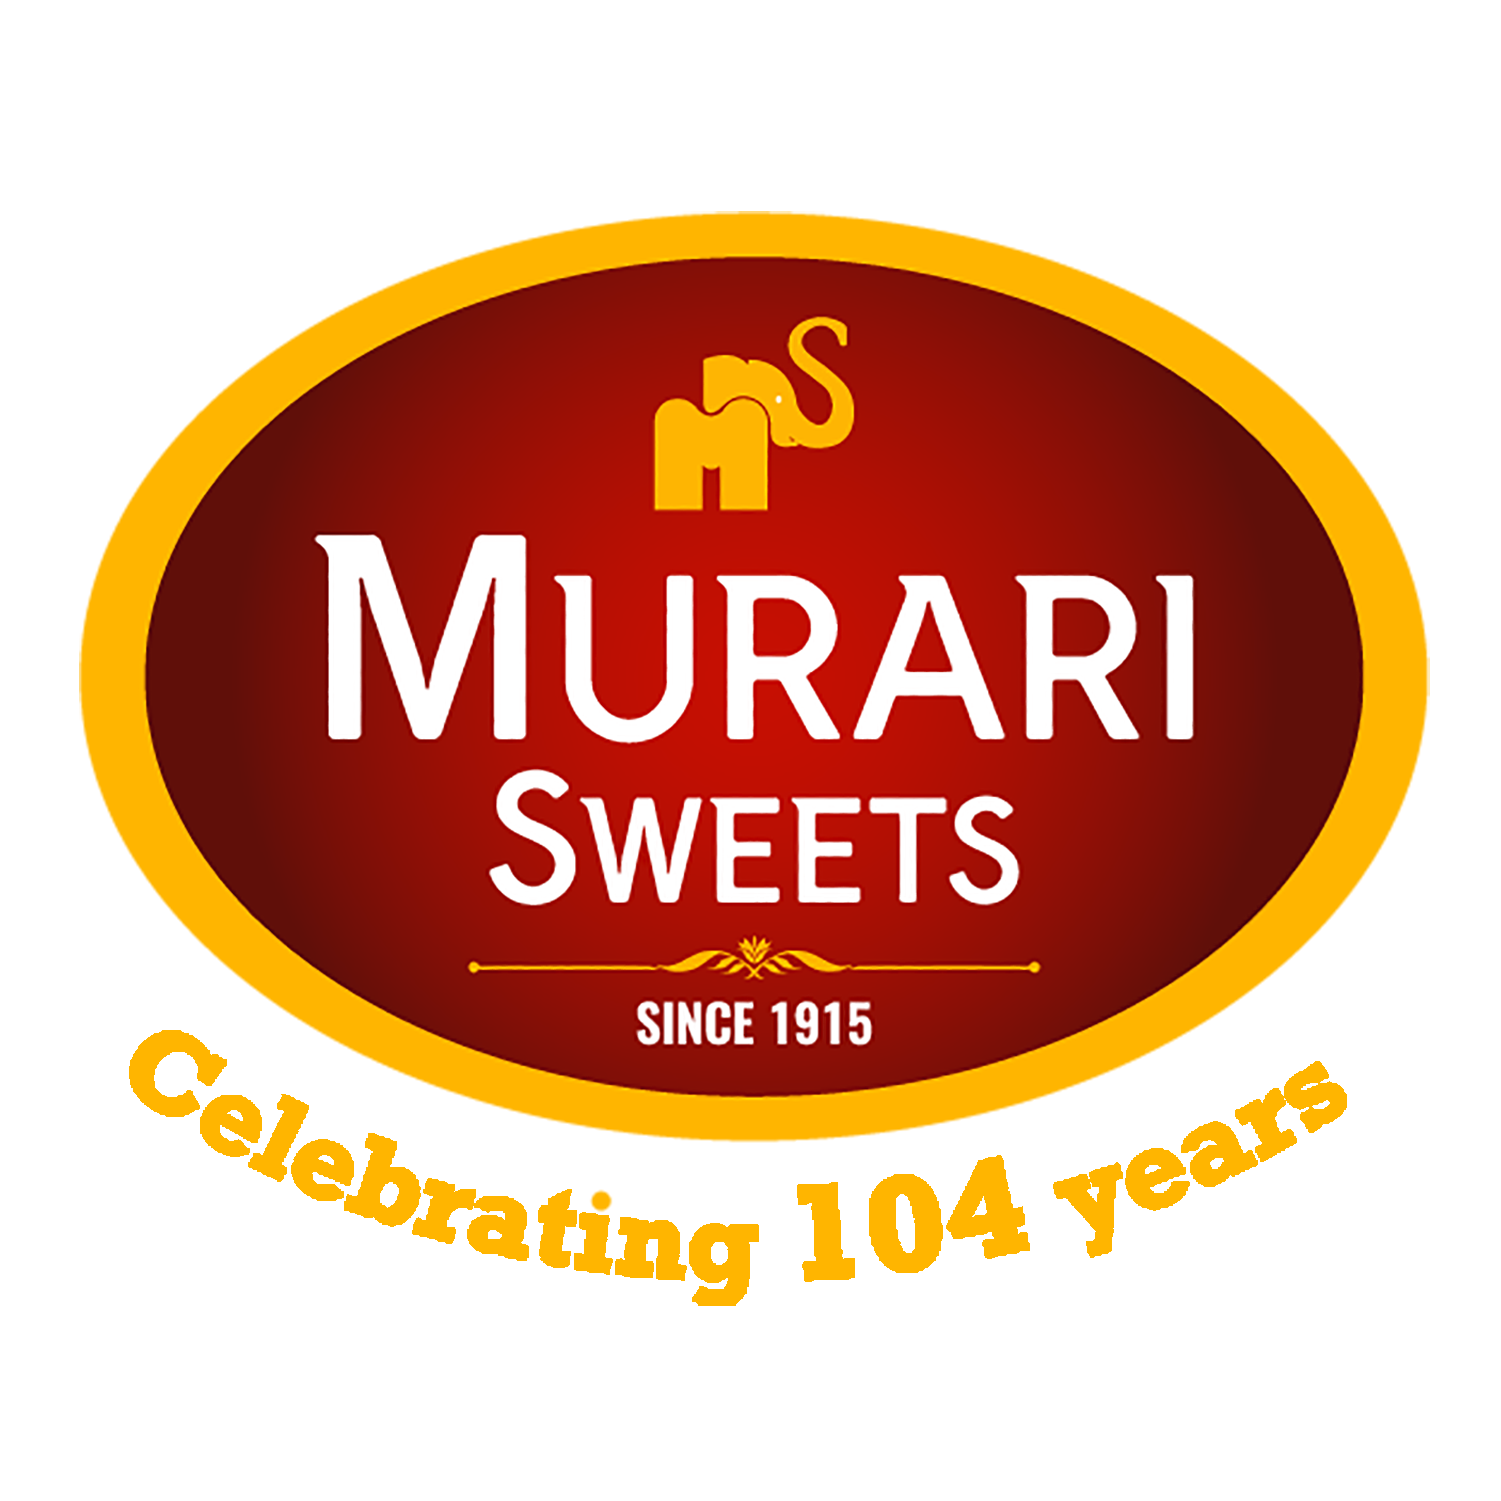 Best Sweets Shops in Kumbakonam | Famous Sweet Shops in Chennai | Murari Sweets Logo